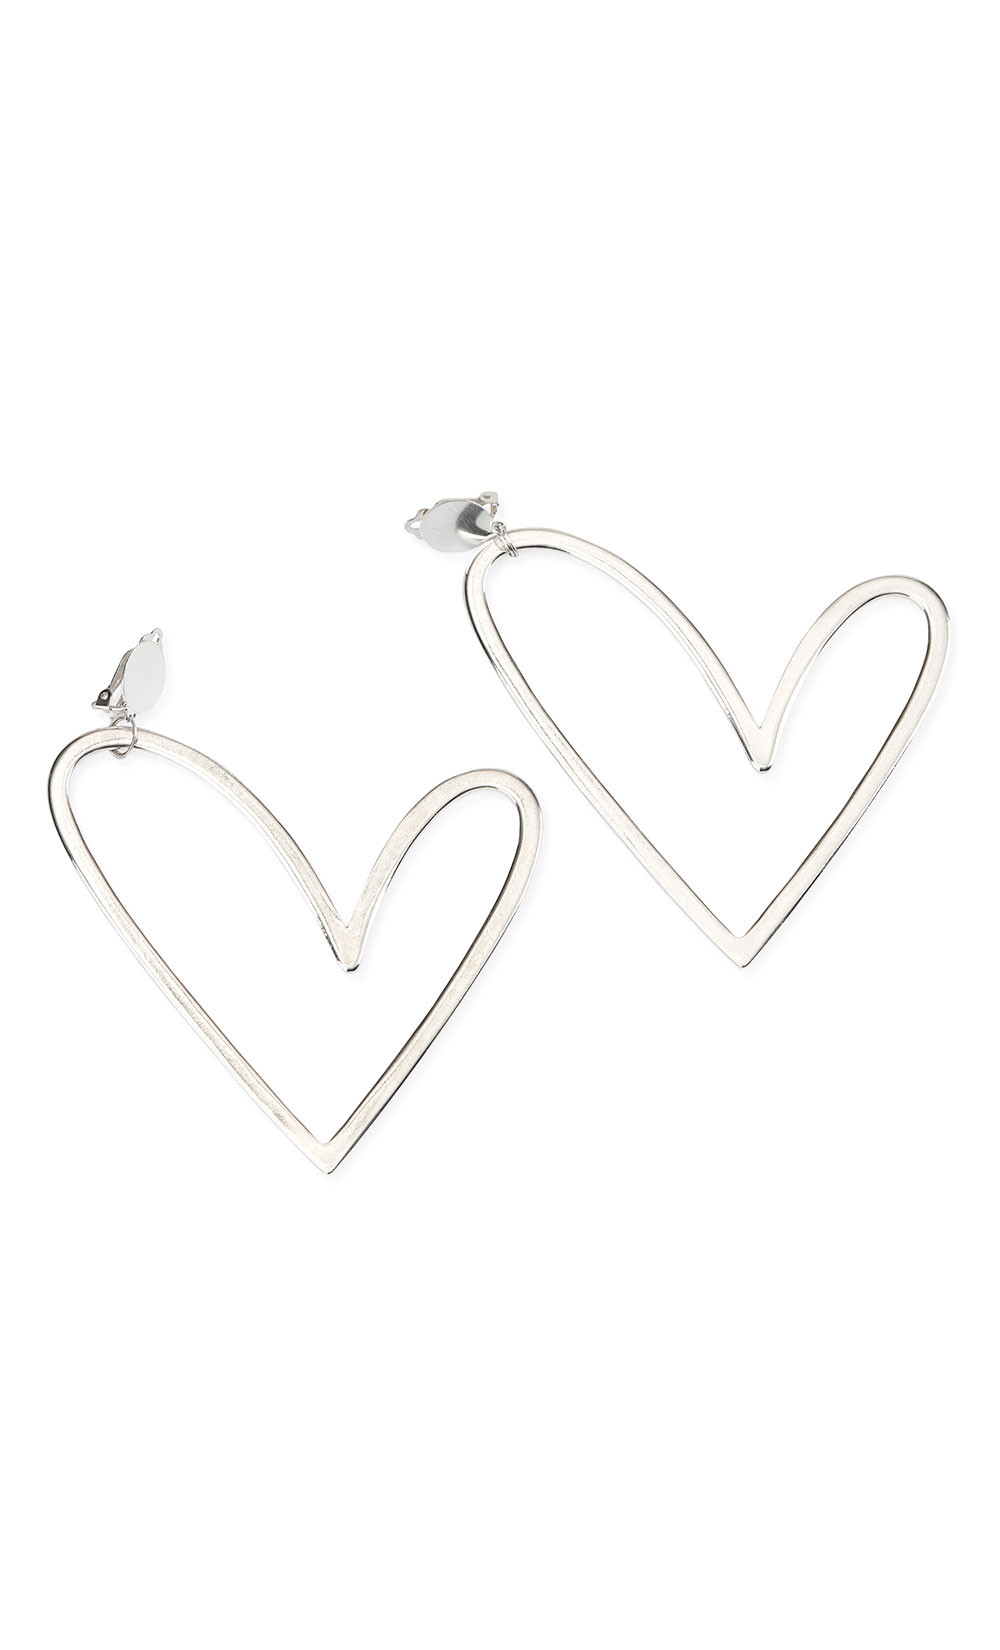 Pair of Heart Earrings